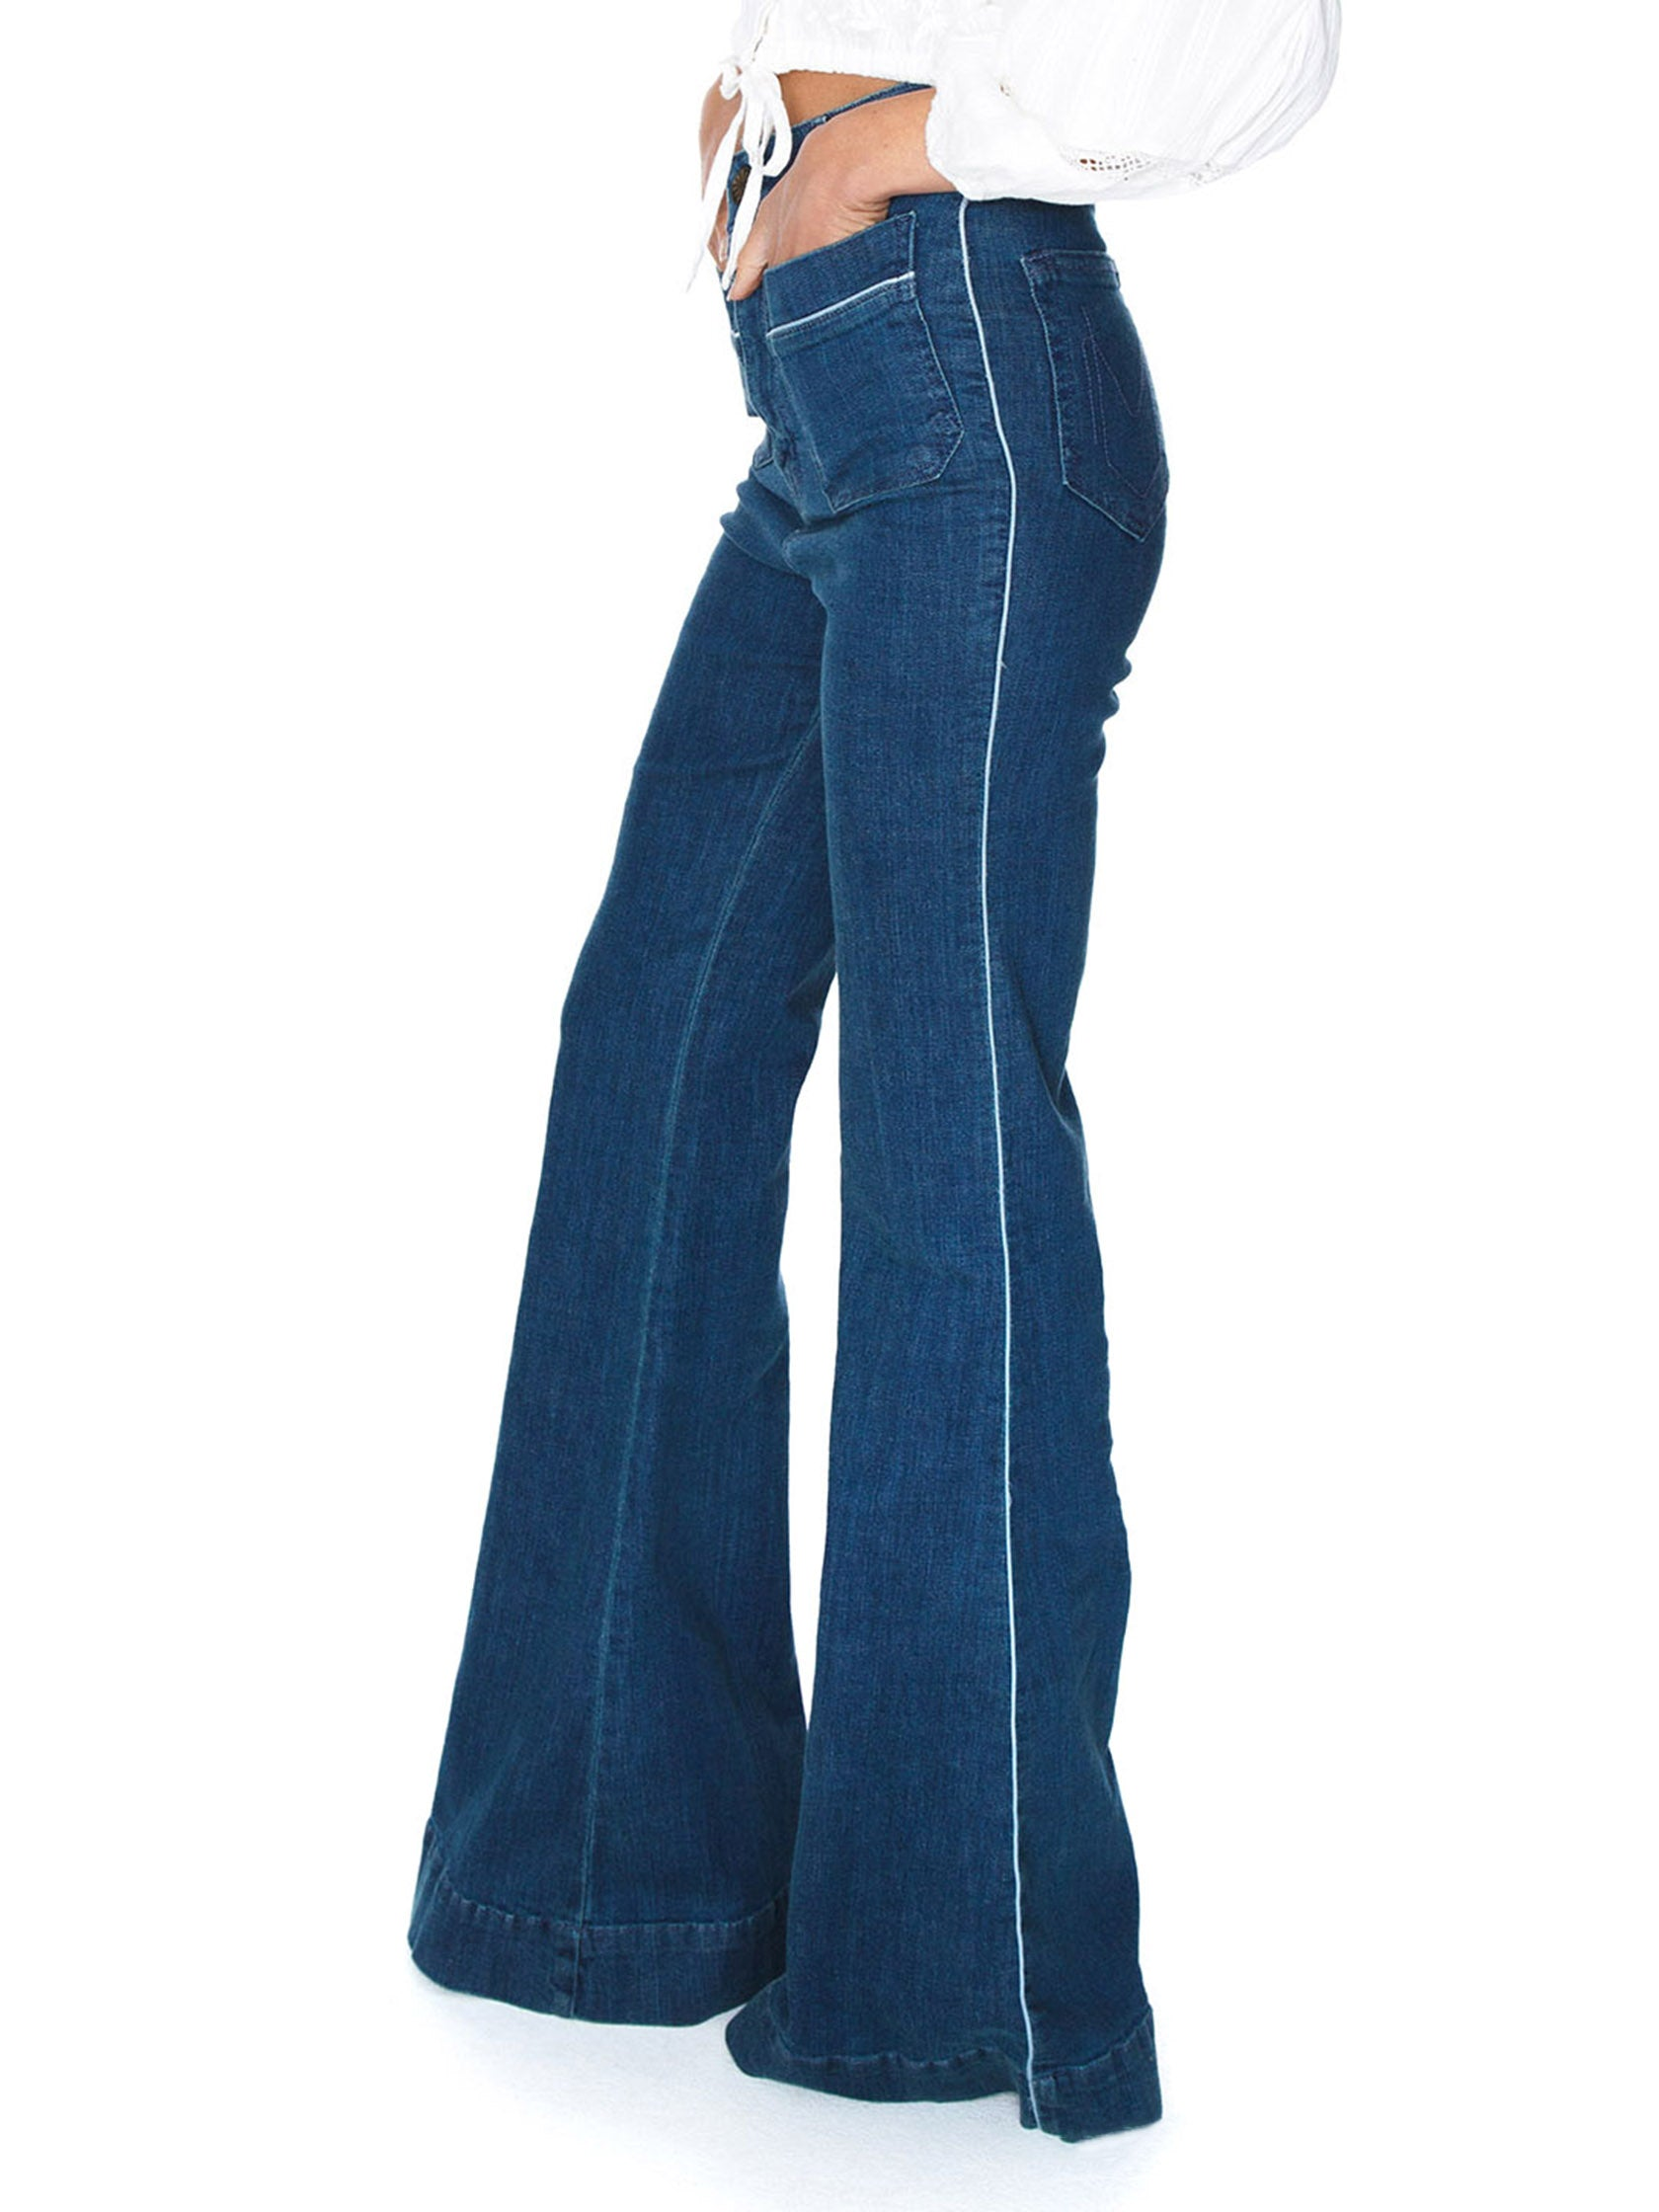 Women wearing a denim rental from Show Me Your Mumu called Farrah Trouser Flare